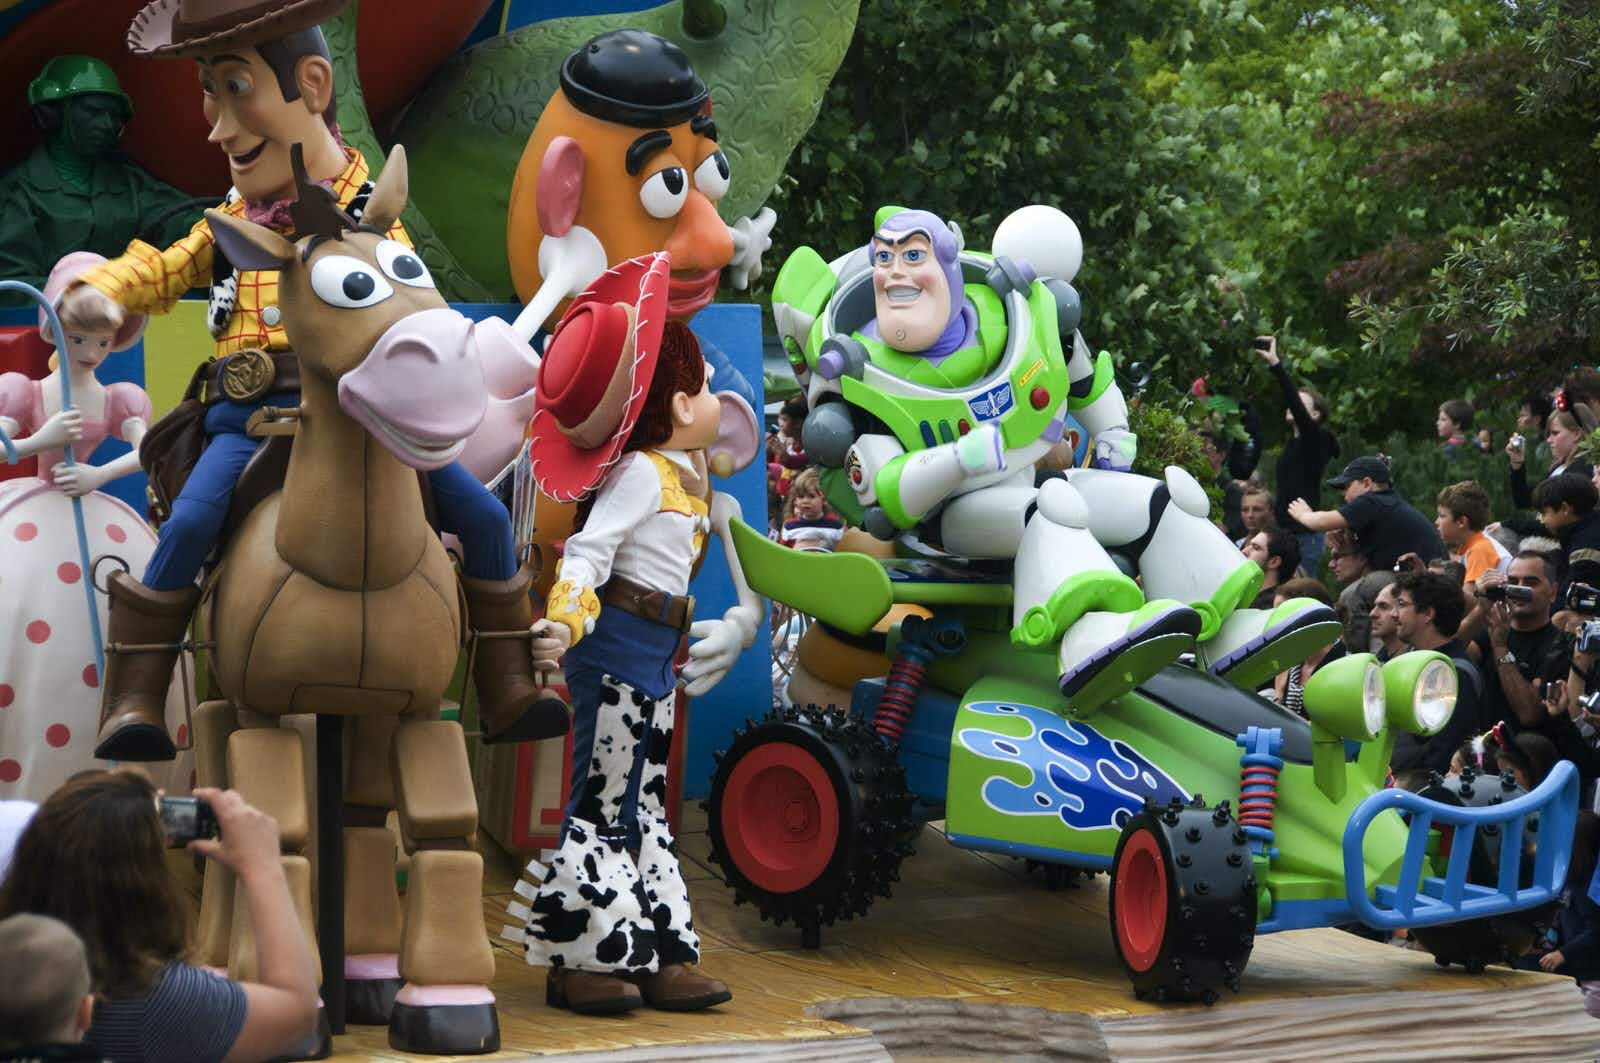 Characters from Toy Story including Buzz Lightyear, Jessie, Bullseye and Mr Potato Head